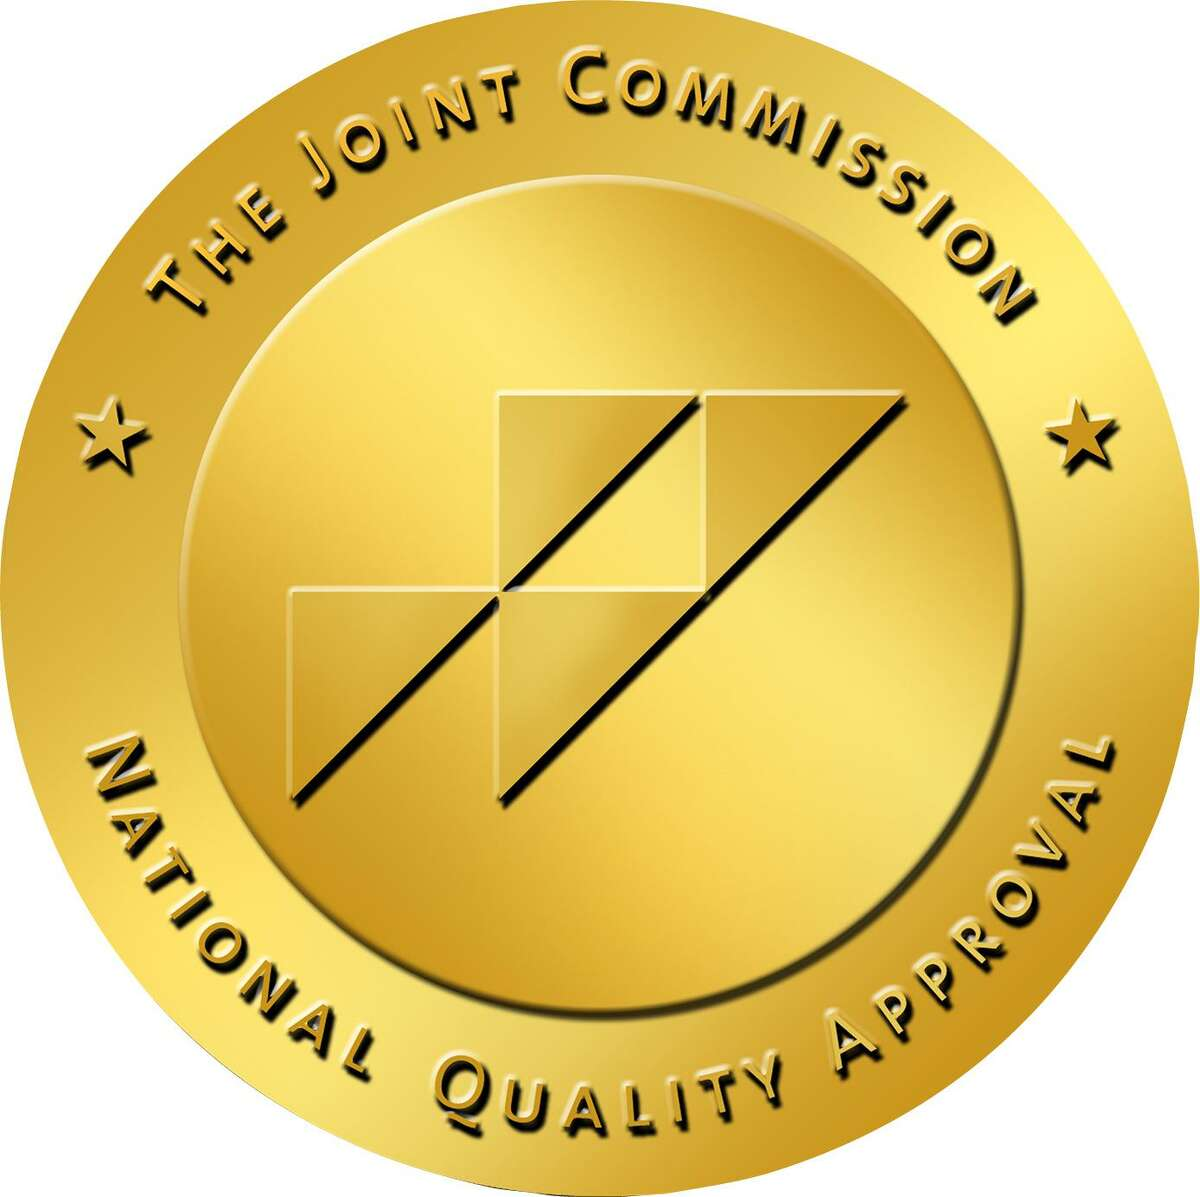 Griffin Health earned The Joint Commission's Gold Seal of Approval® for Hospital and Behavioral Health Care Accreditation, reflecting its commitment to providing safe and quality patient care.